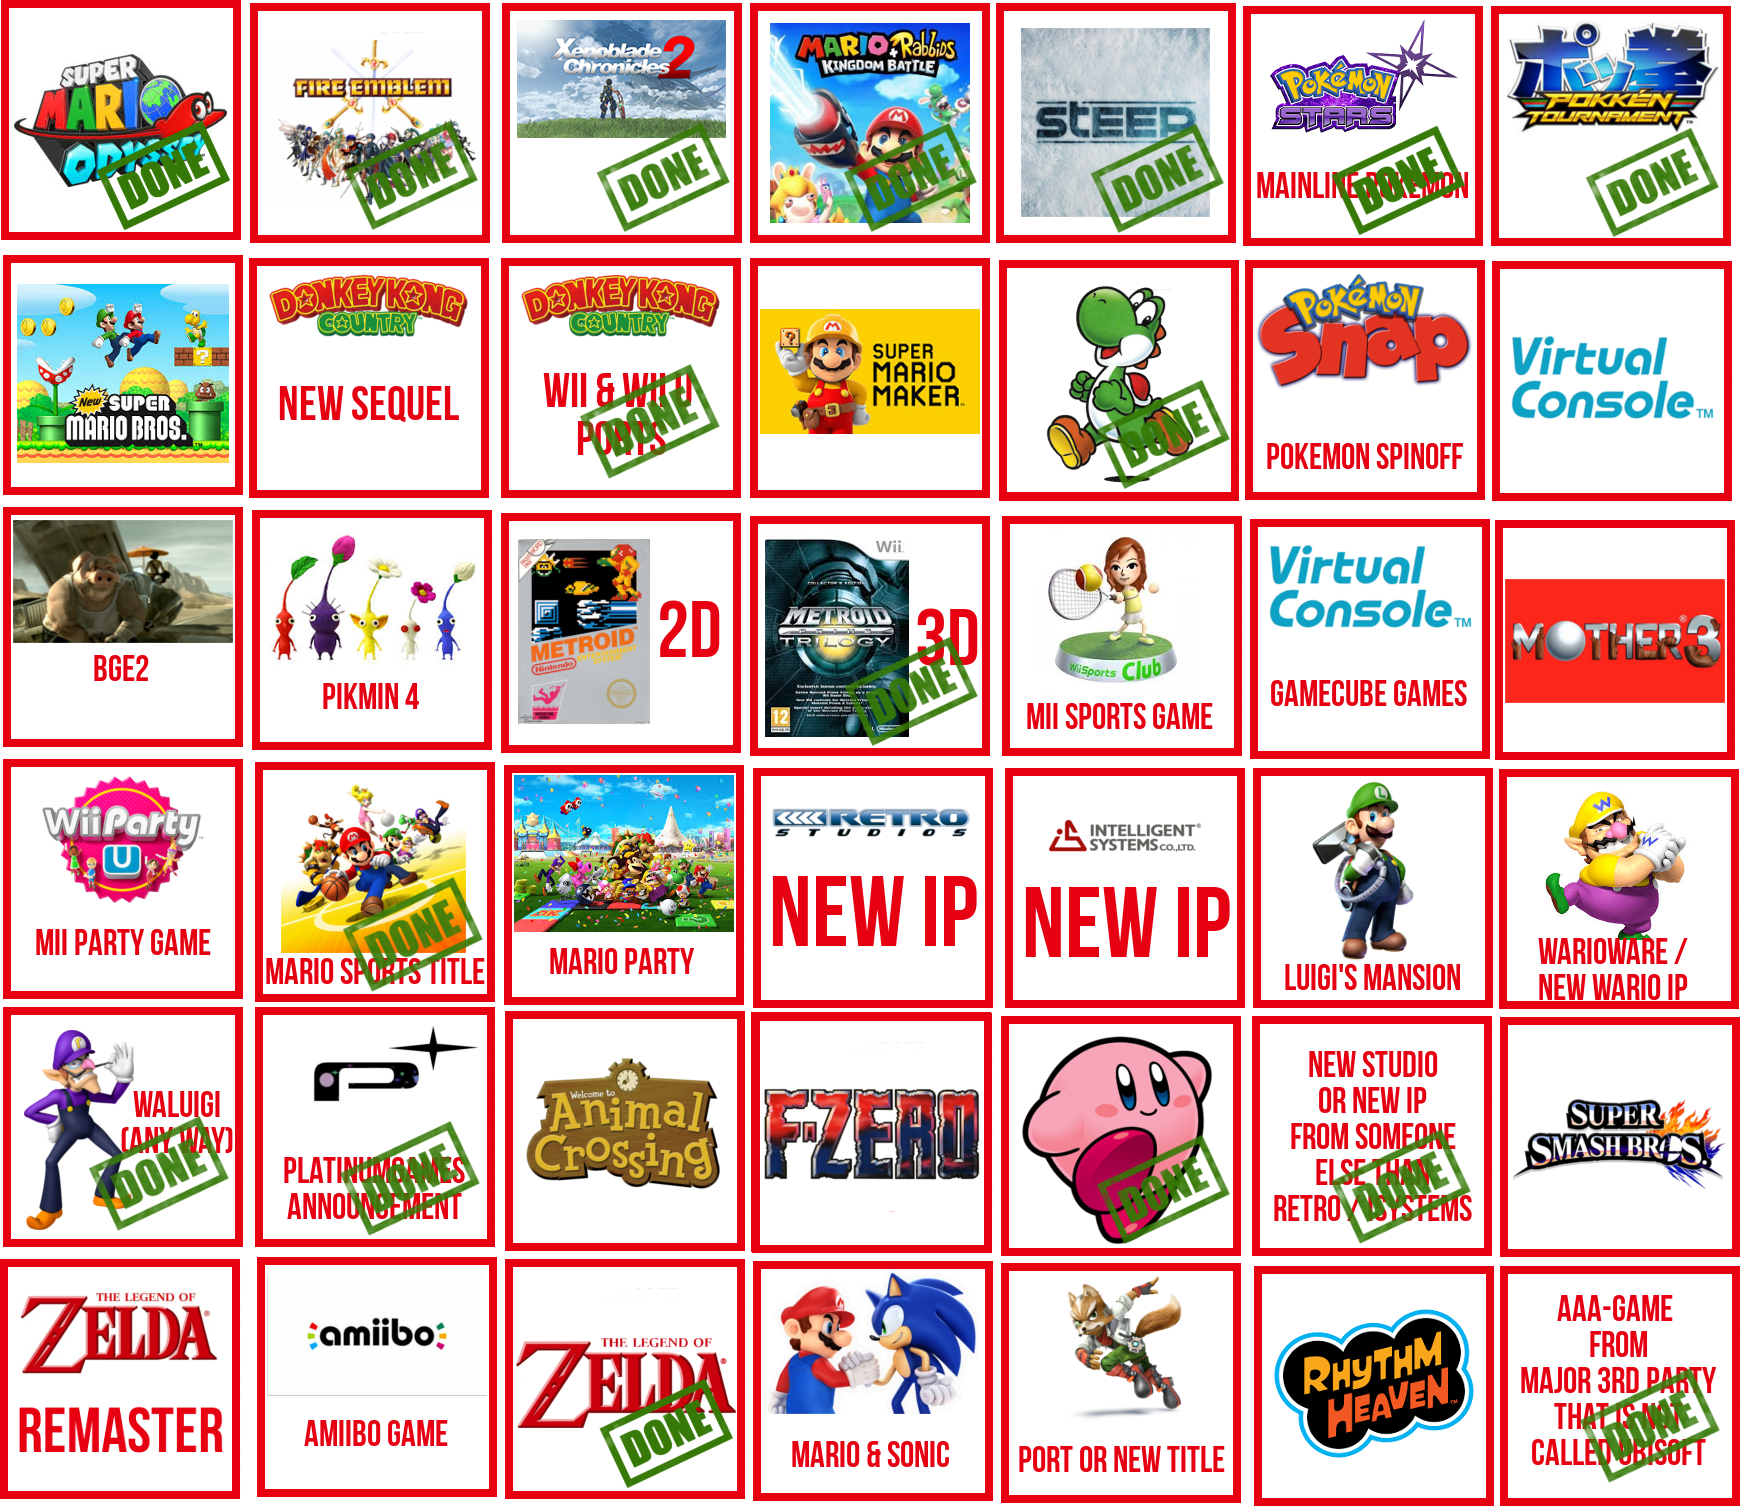 Looking at this old 6x7 asymmetric bingo card from almost a year ago Switch is doing pretty darn good. http://bit.ly/2lnzap3 #nintendo